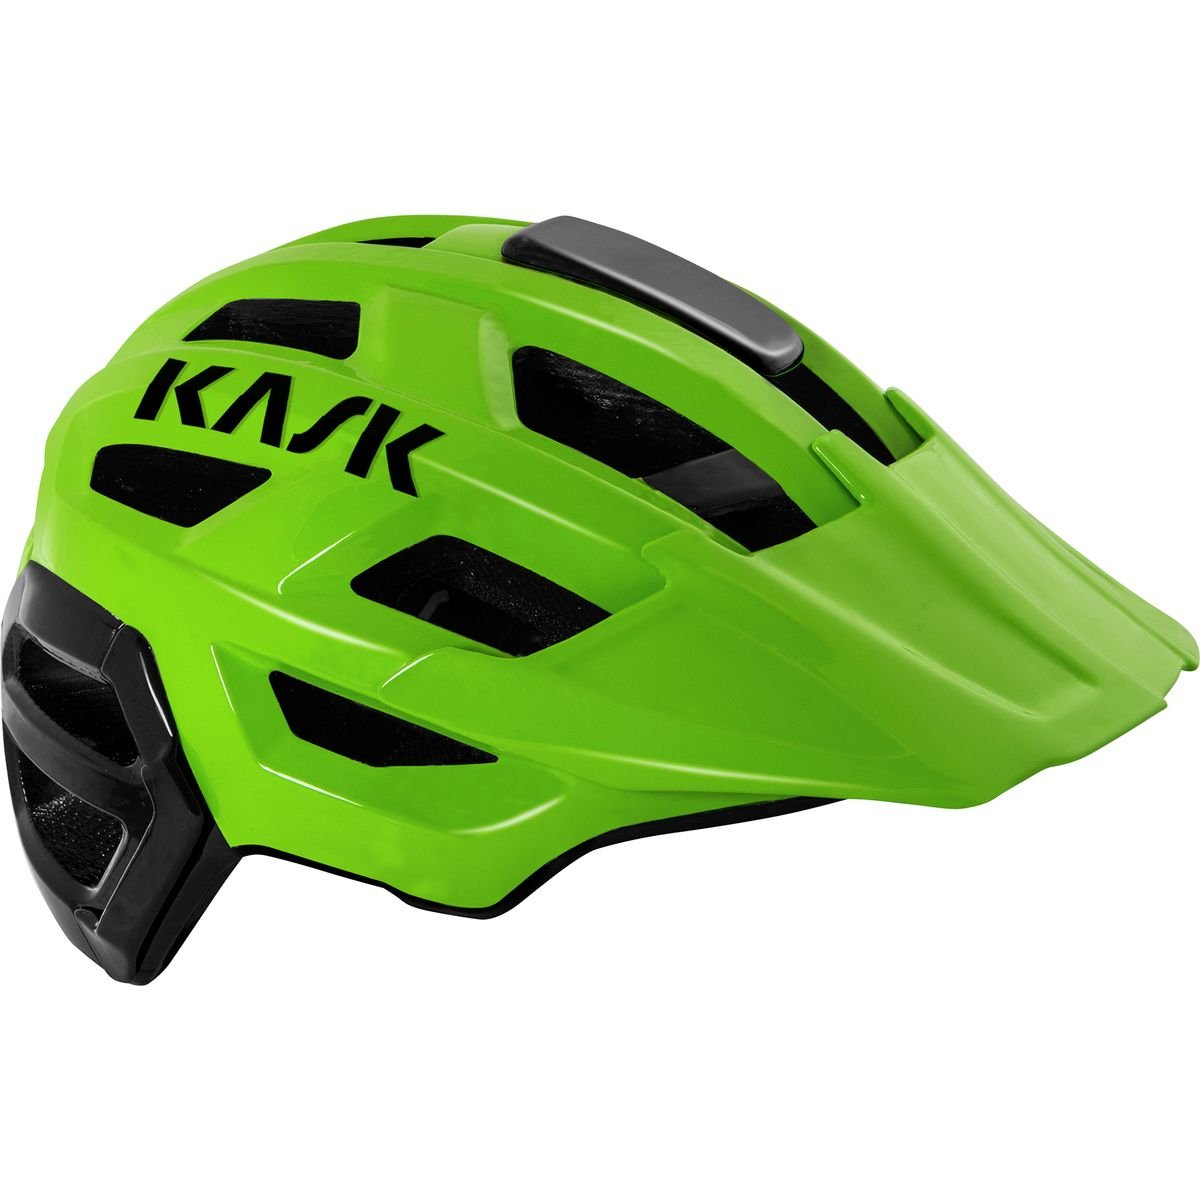 Kask Rex Helmet, Lime, Large by Kask (Image #1)